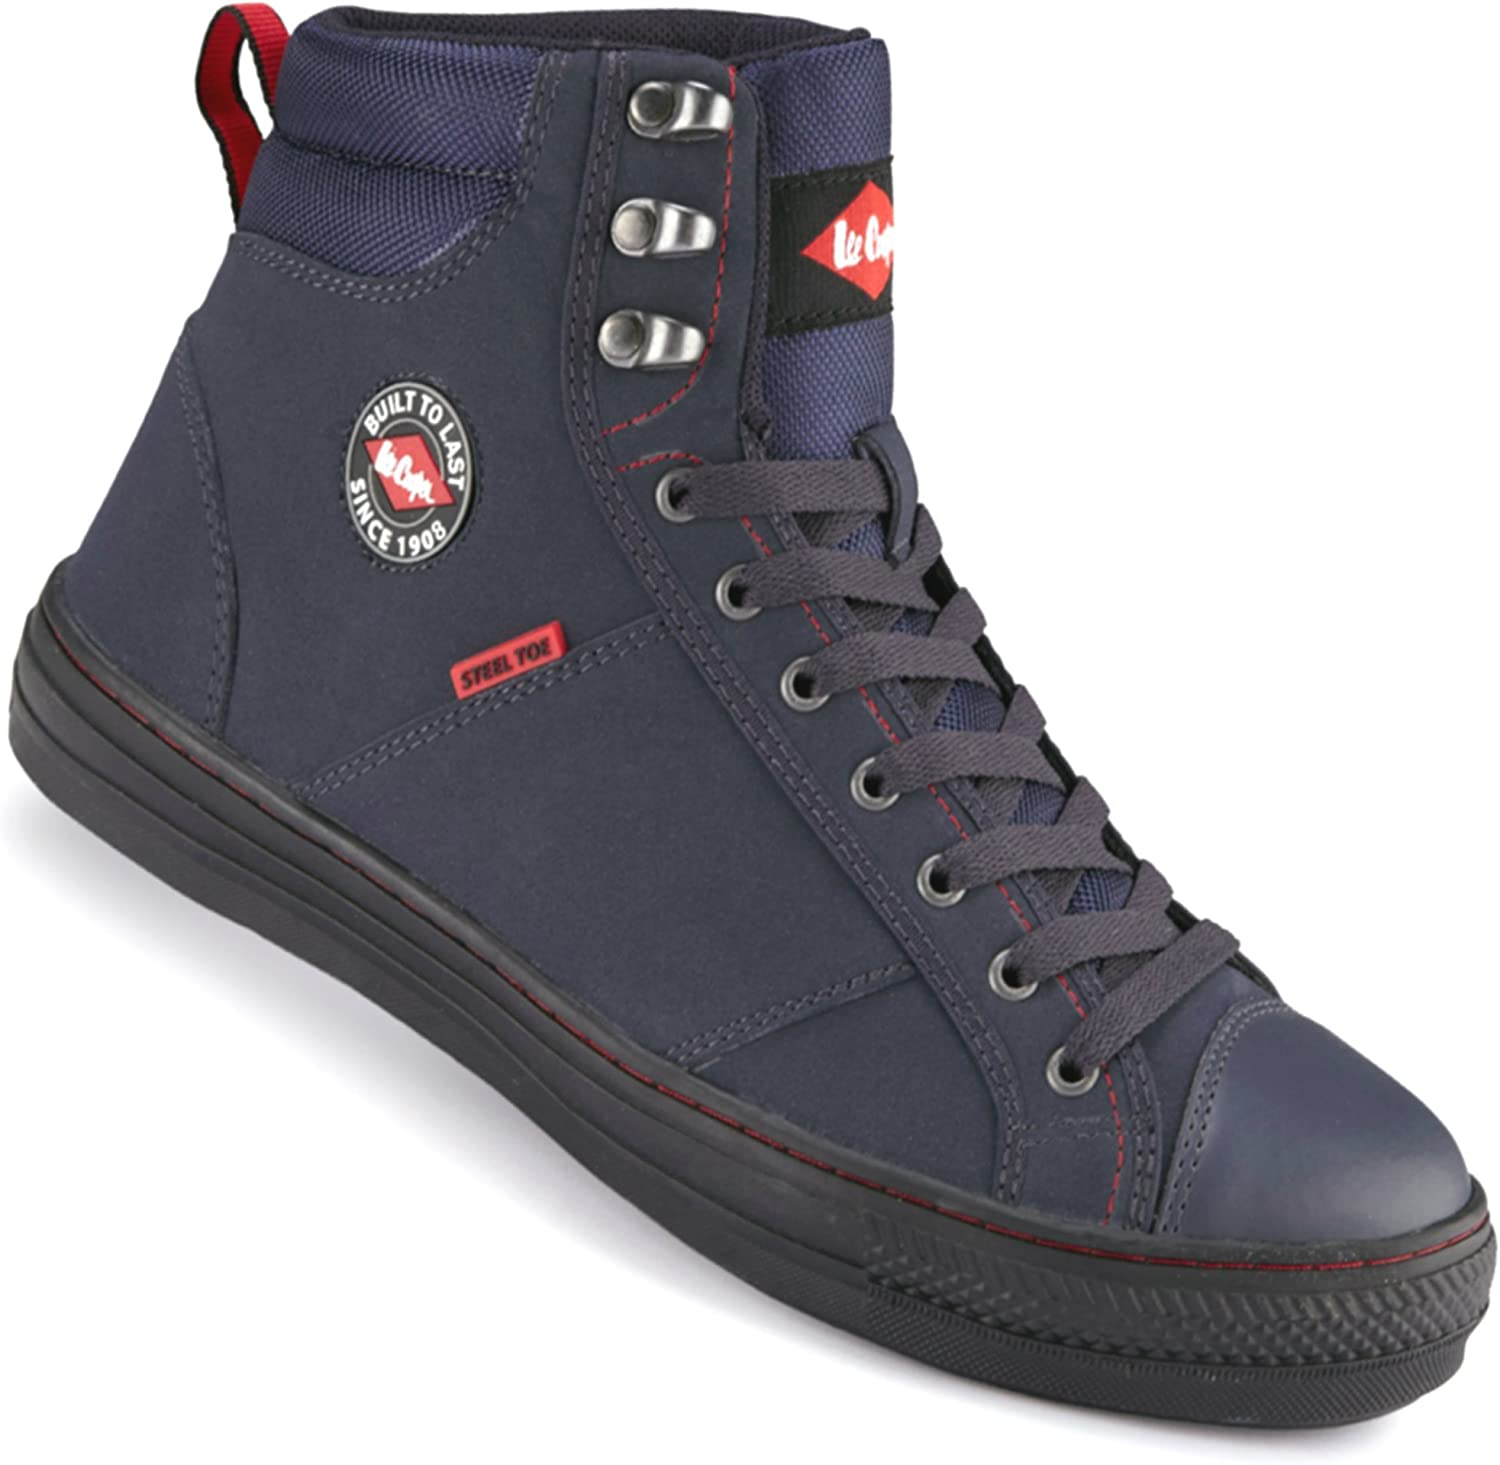 Lee Cooper Navy bluee Lace Up Sports Mid Top Trainer Boot - Sizes 3 to 12